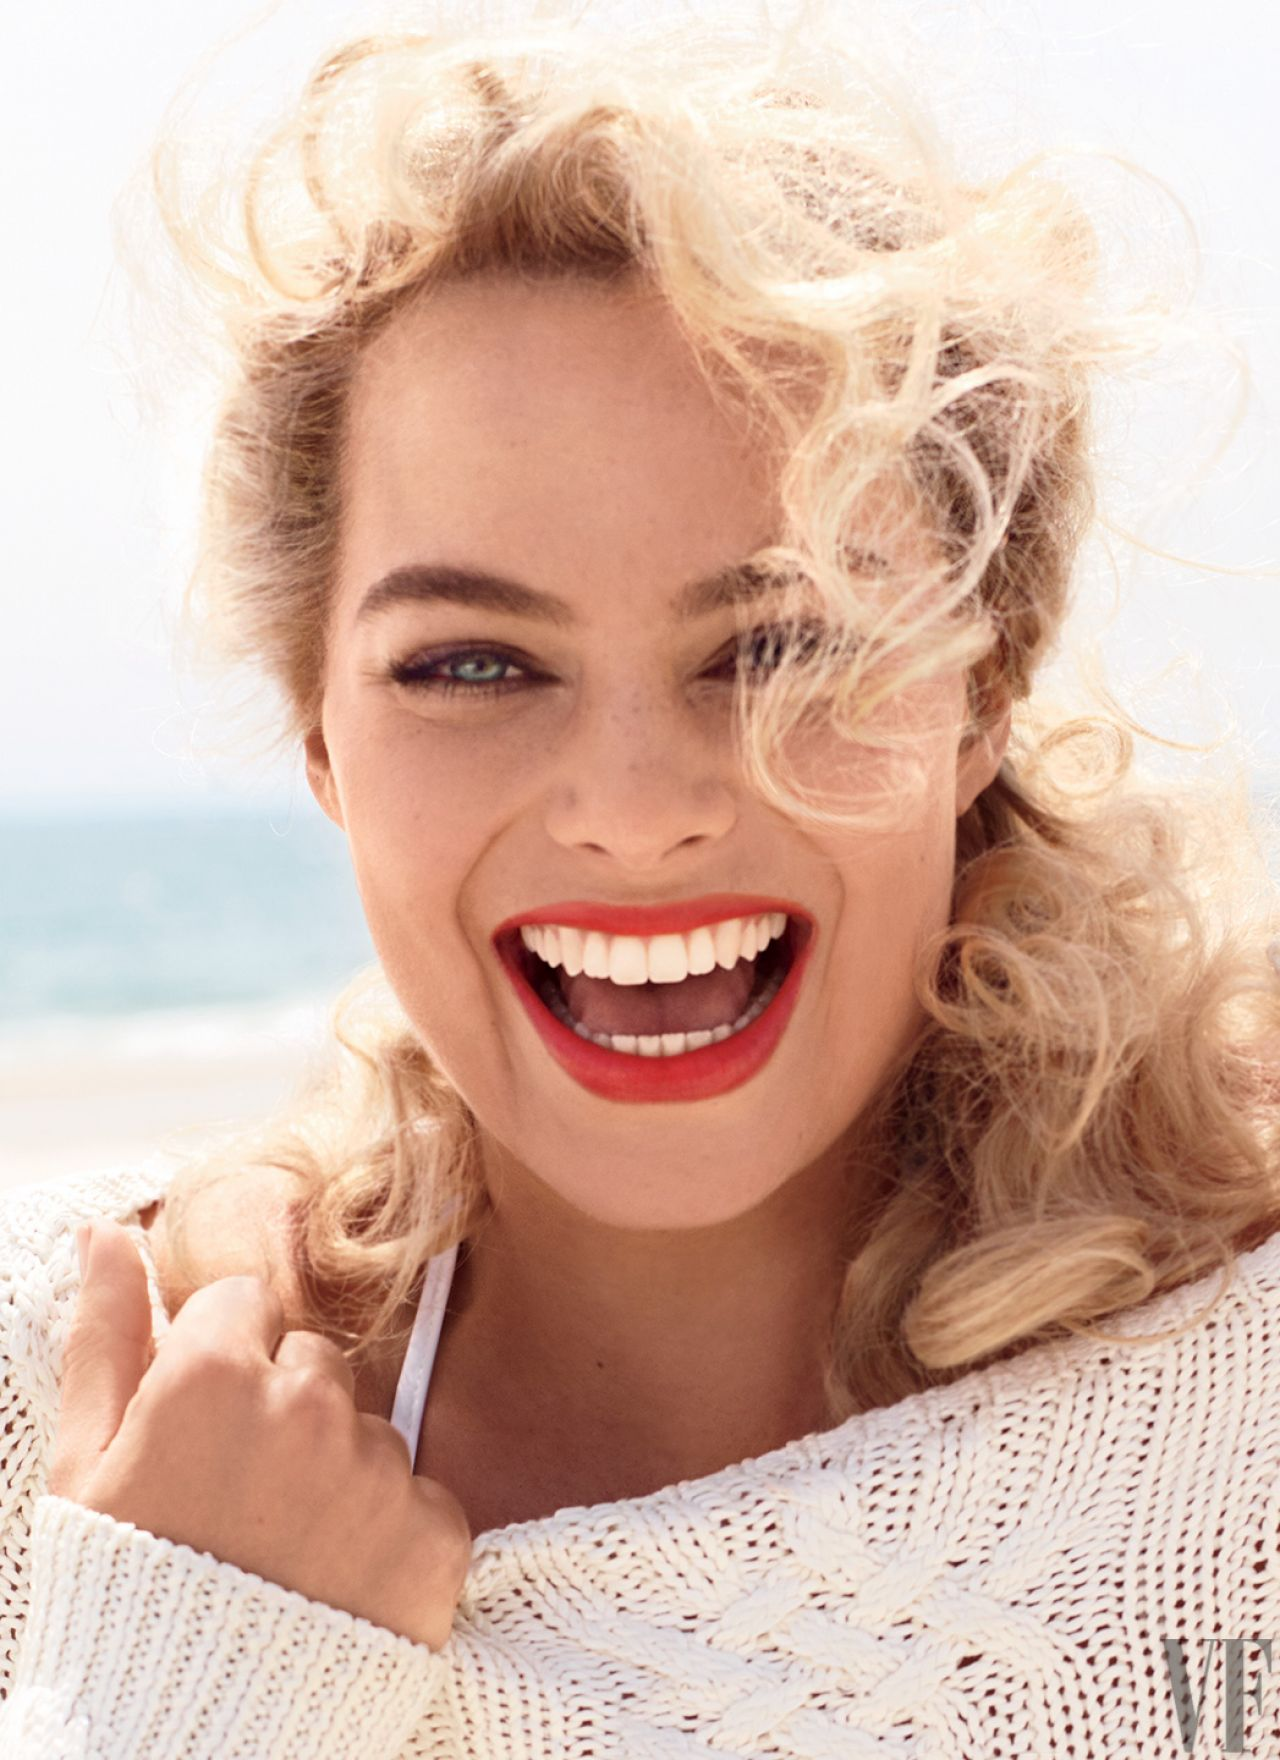 http://celebmafia.com/wp-content/uploads/2014/07/margot-robbie-vanity-fair-magazine-august-2014-issue_5.jpg